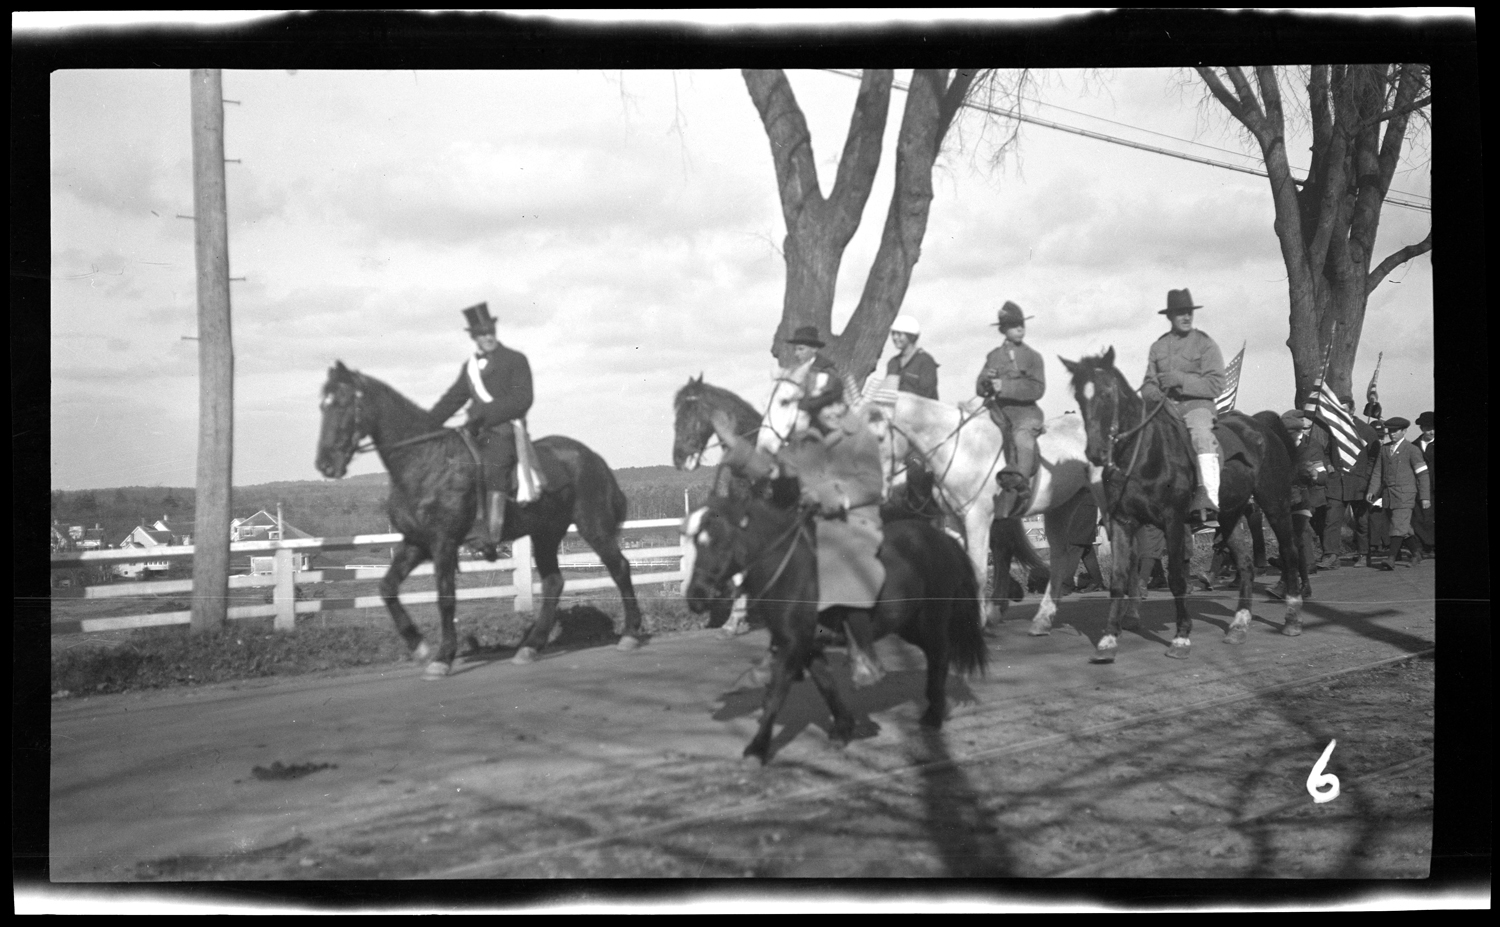 Riders in the Welcome Home parade, October 18, 1919.